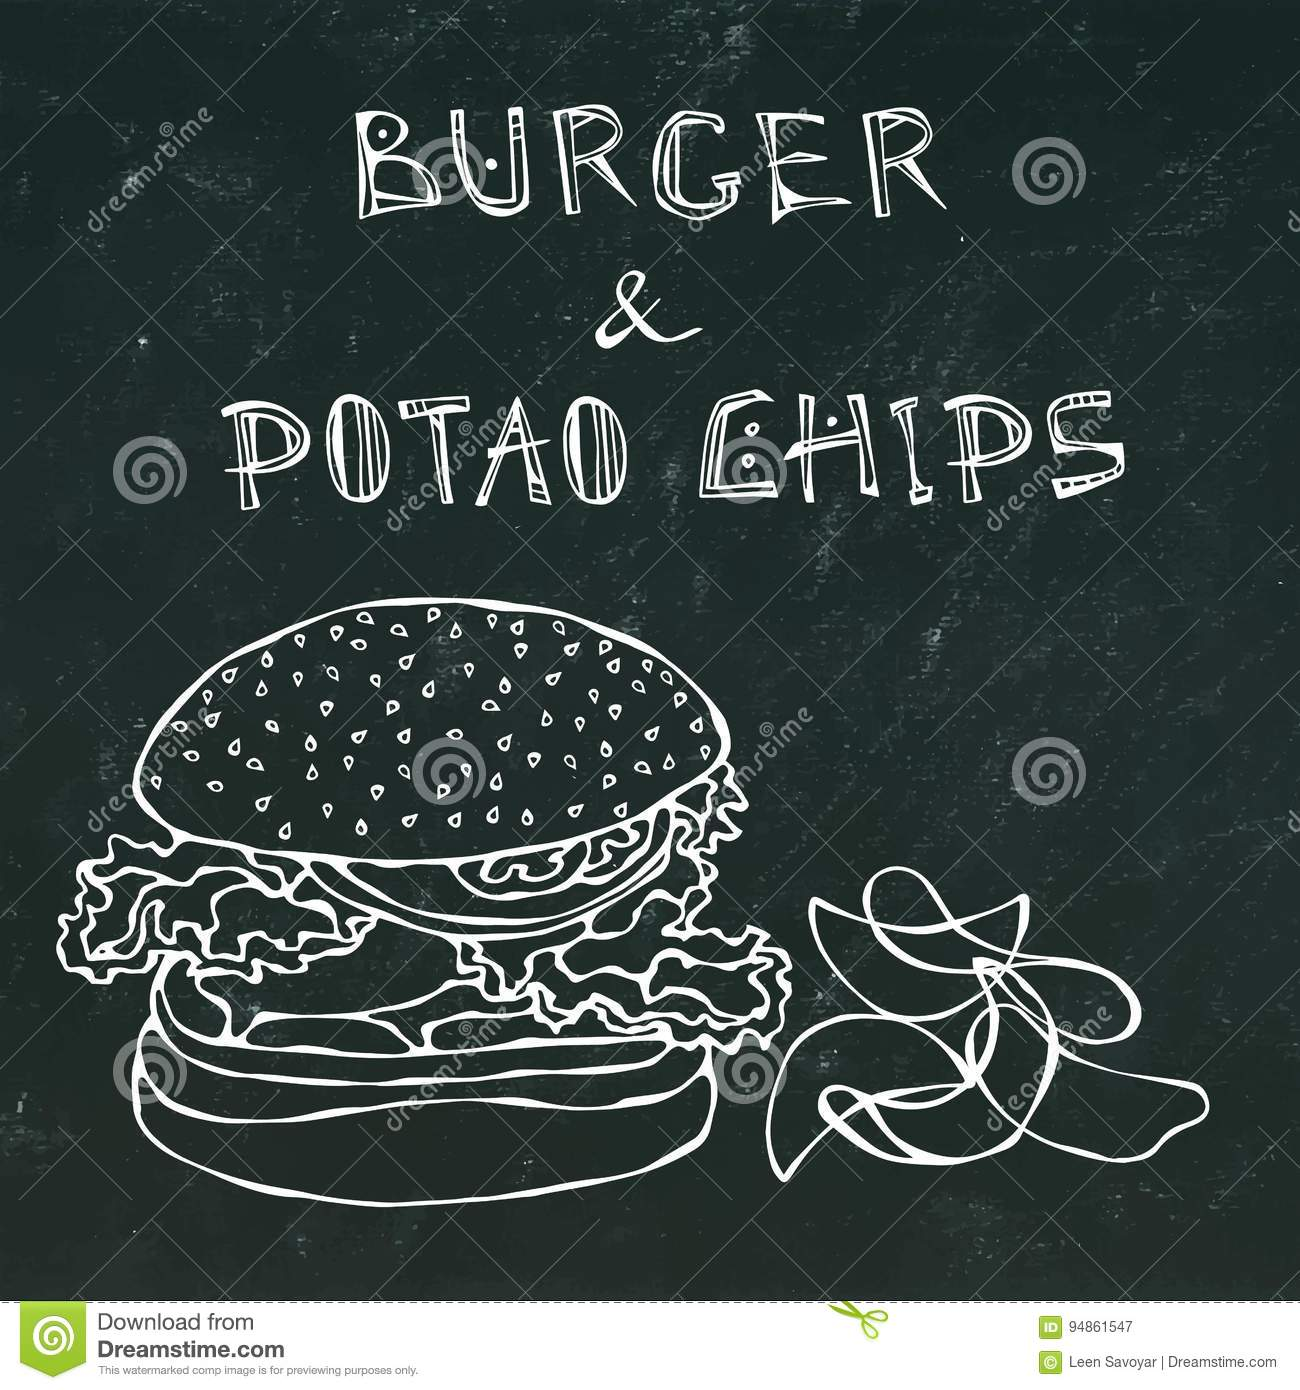 Big Hamburger Or Cheeseburger Beer Mug Or Pint And Potato Chips Burger Logo Isolated On A Black Chalkboard Background Stock Vector Illustration Of Fast Board 94861547